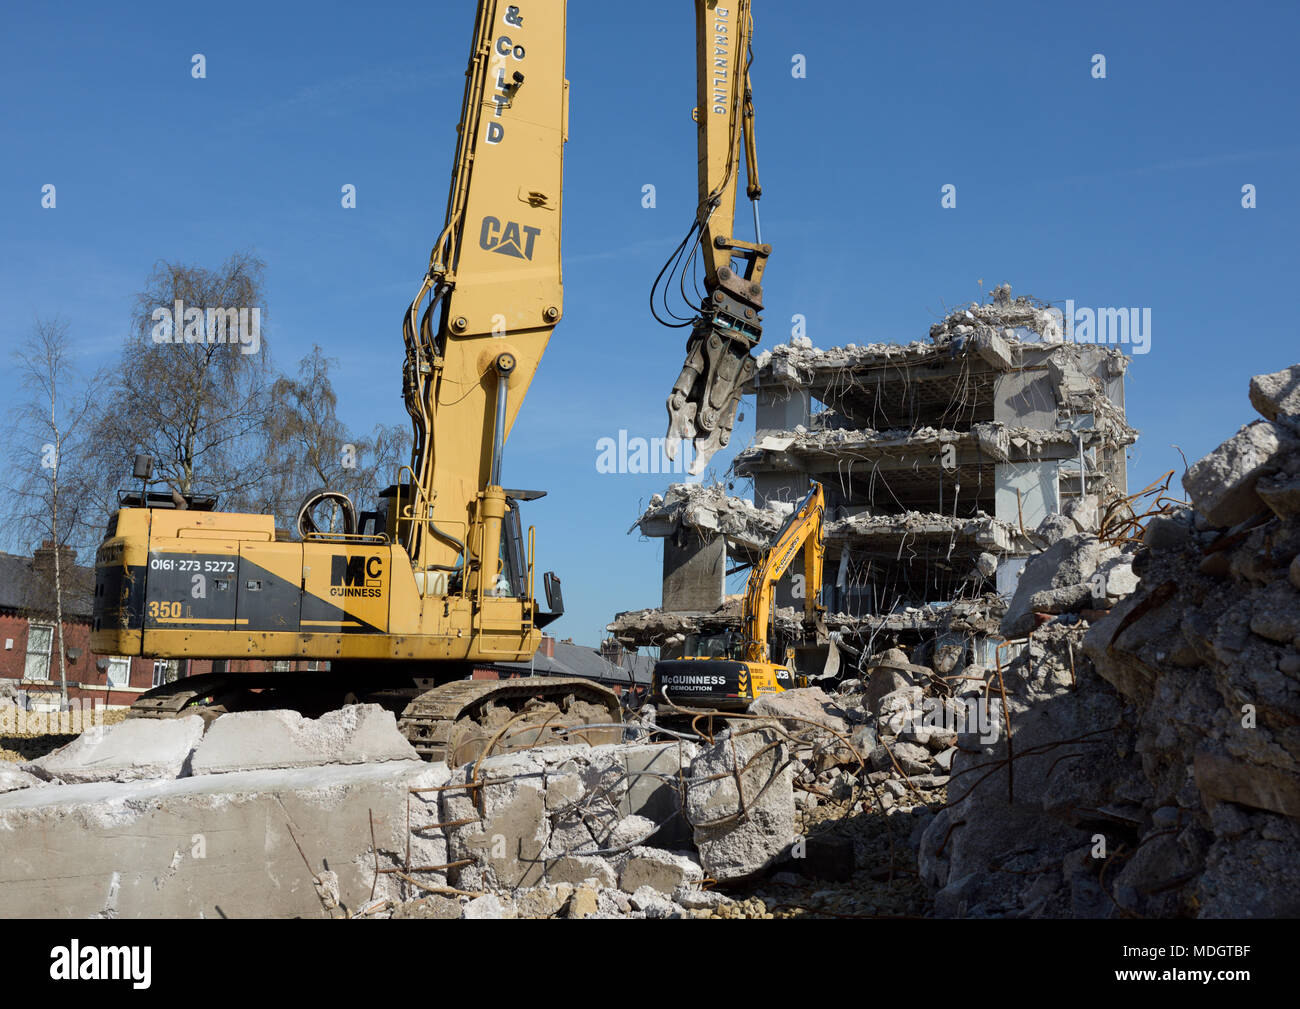 Caterpillar 350L high reach demolition excavator with concrete crusher attachment and concrete rubble in front of partly demolished concrete building - Stock Image